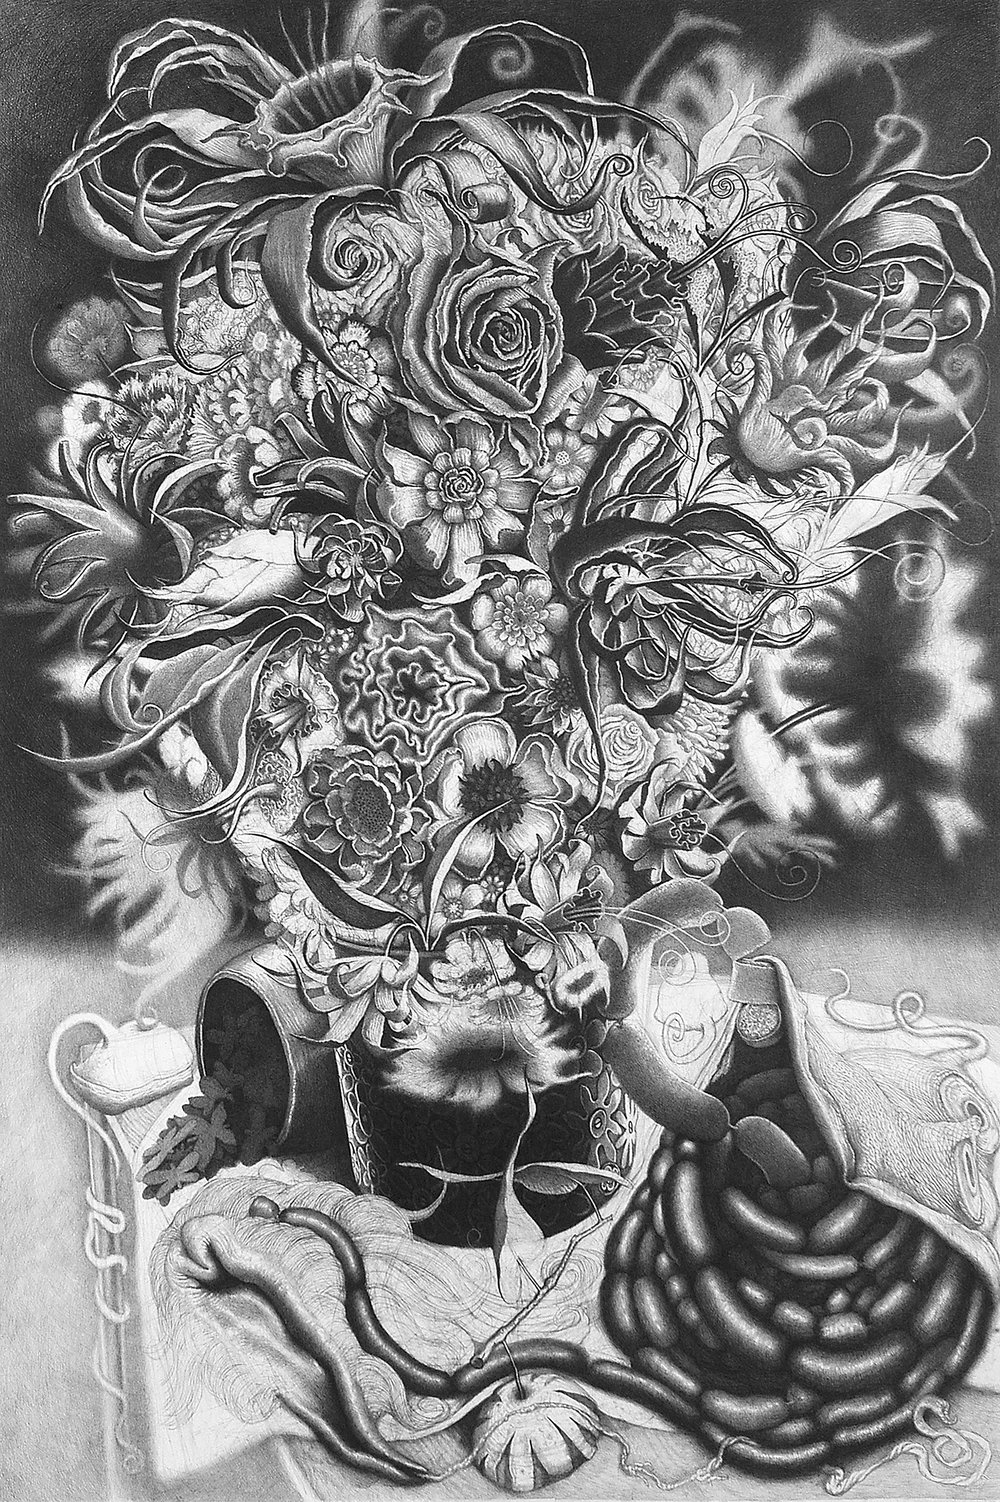 Davor Vrankic  - JE T'AIME BEAUCOUP, 2007-2008, pencil on paper, 120x80cm.jpg